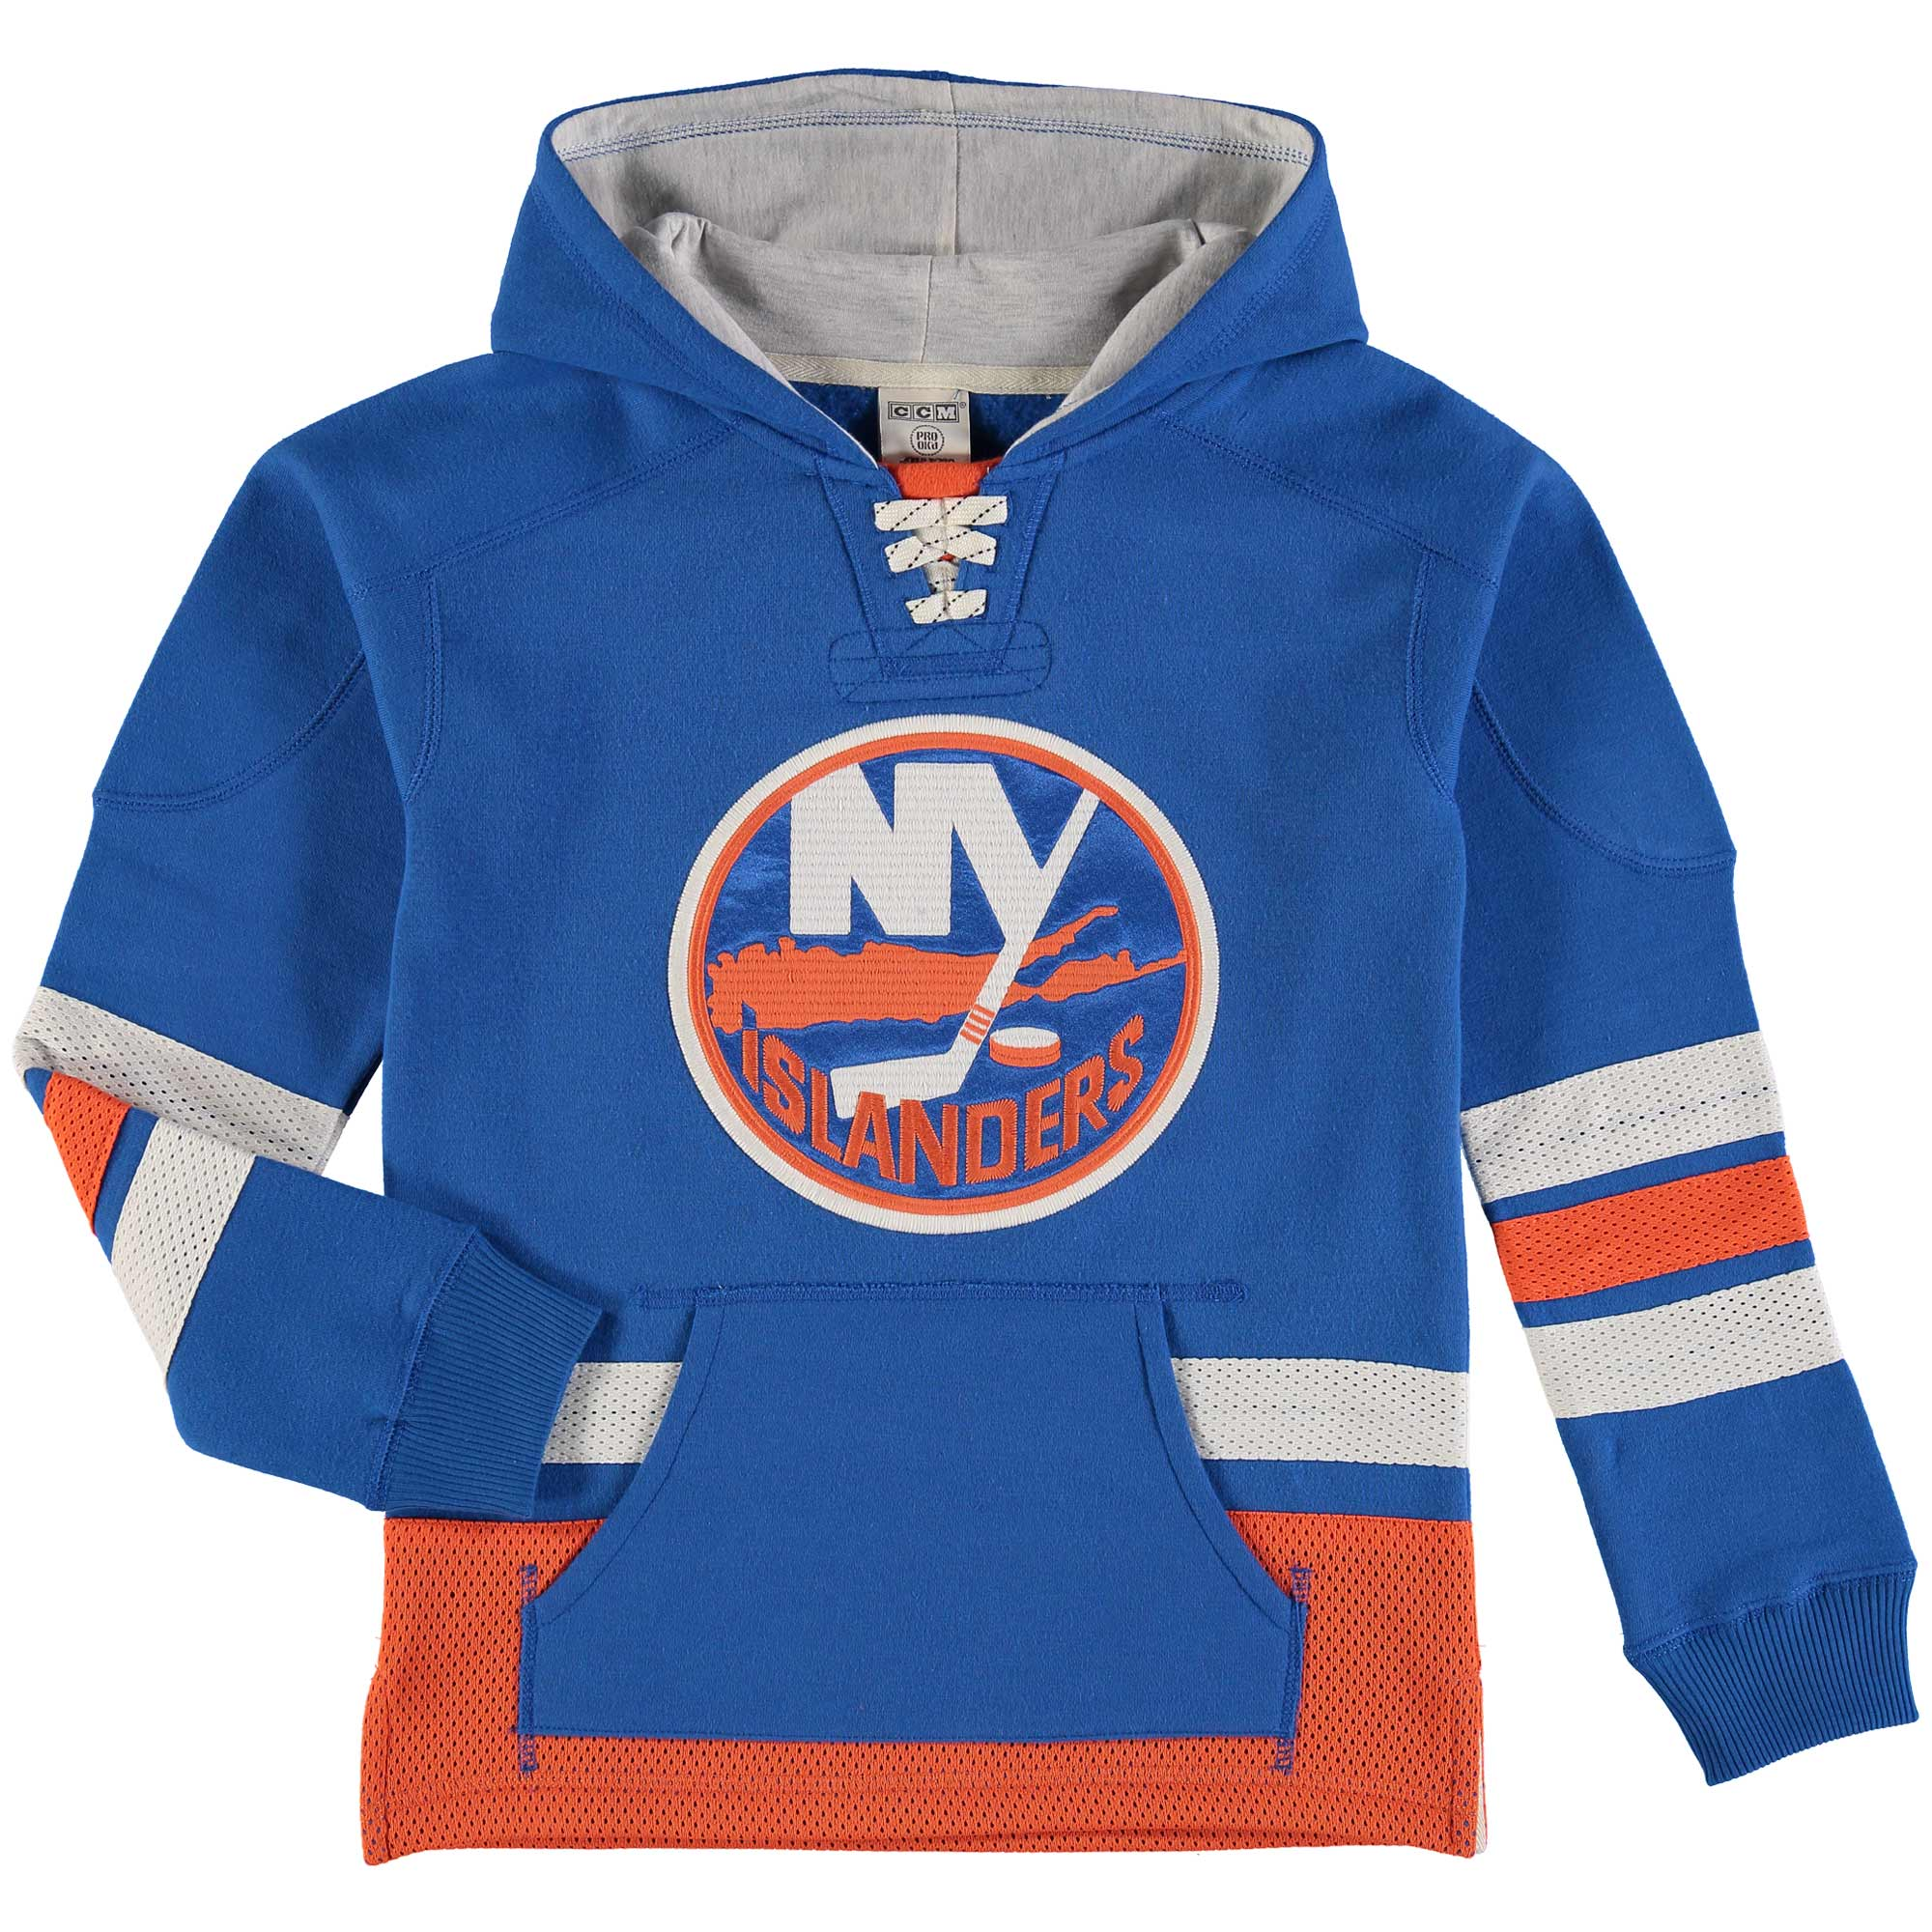 Youth Reebok Royal New York Islanders Retro Skate Hoodie by Outerstuff